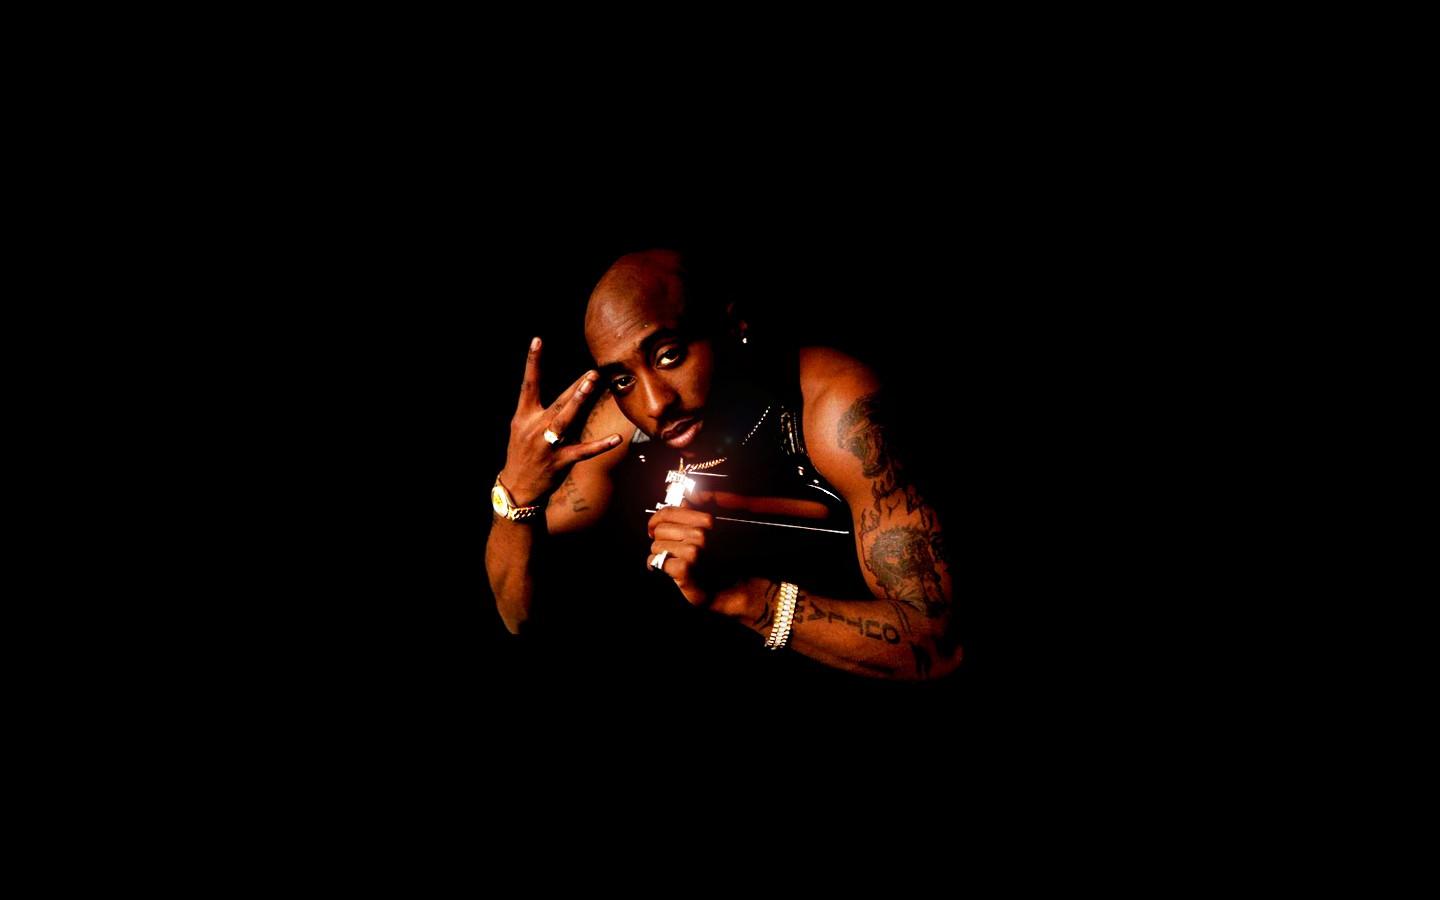 2Pac Wallpaper 3